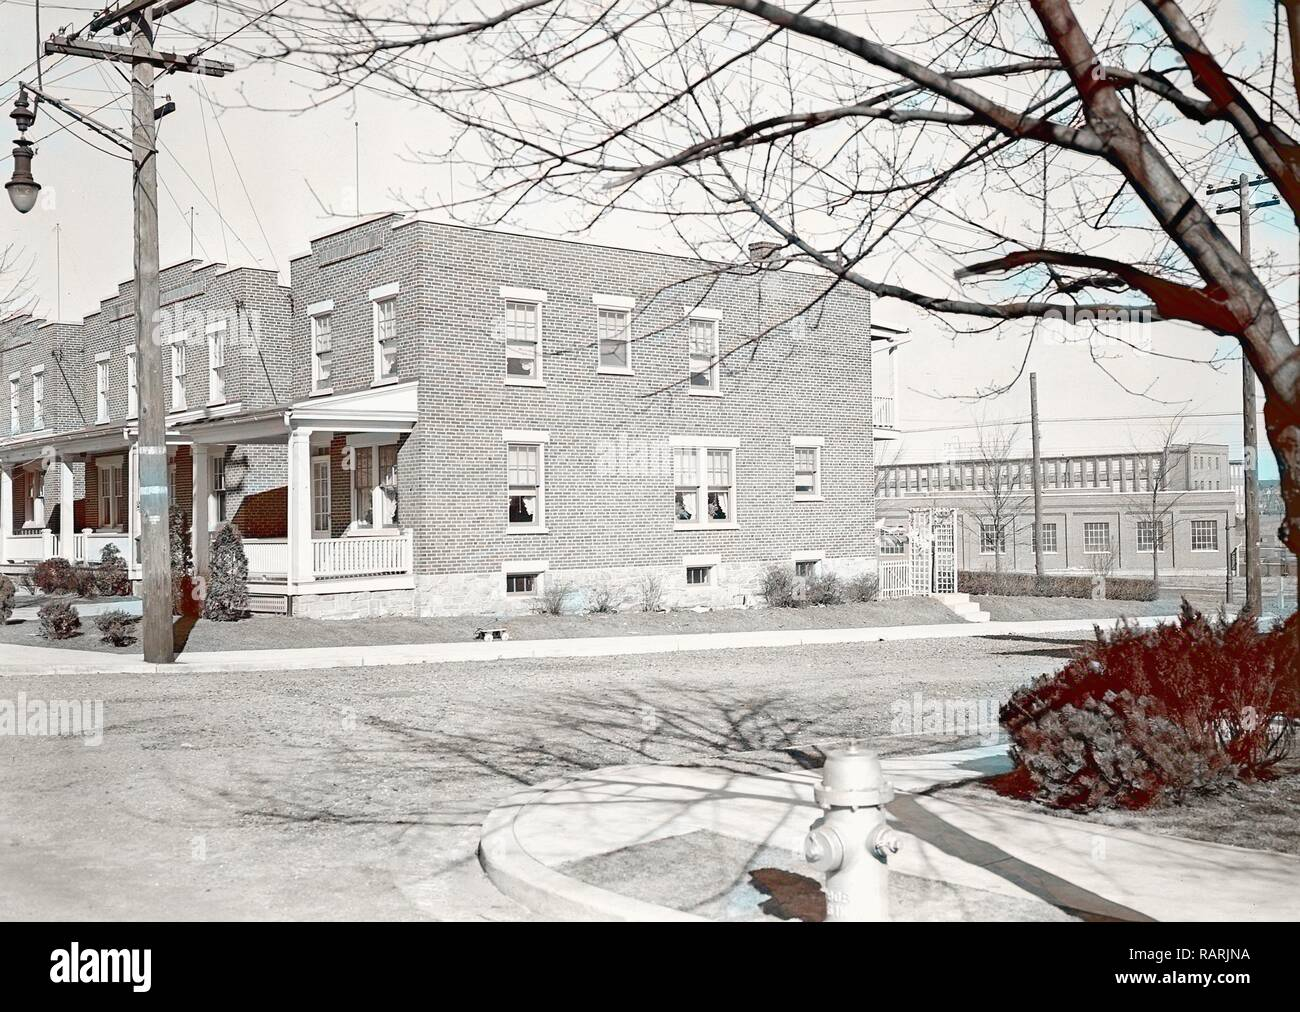 Lancaster, Pennsylvania - Housing  Stehli workers' houses